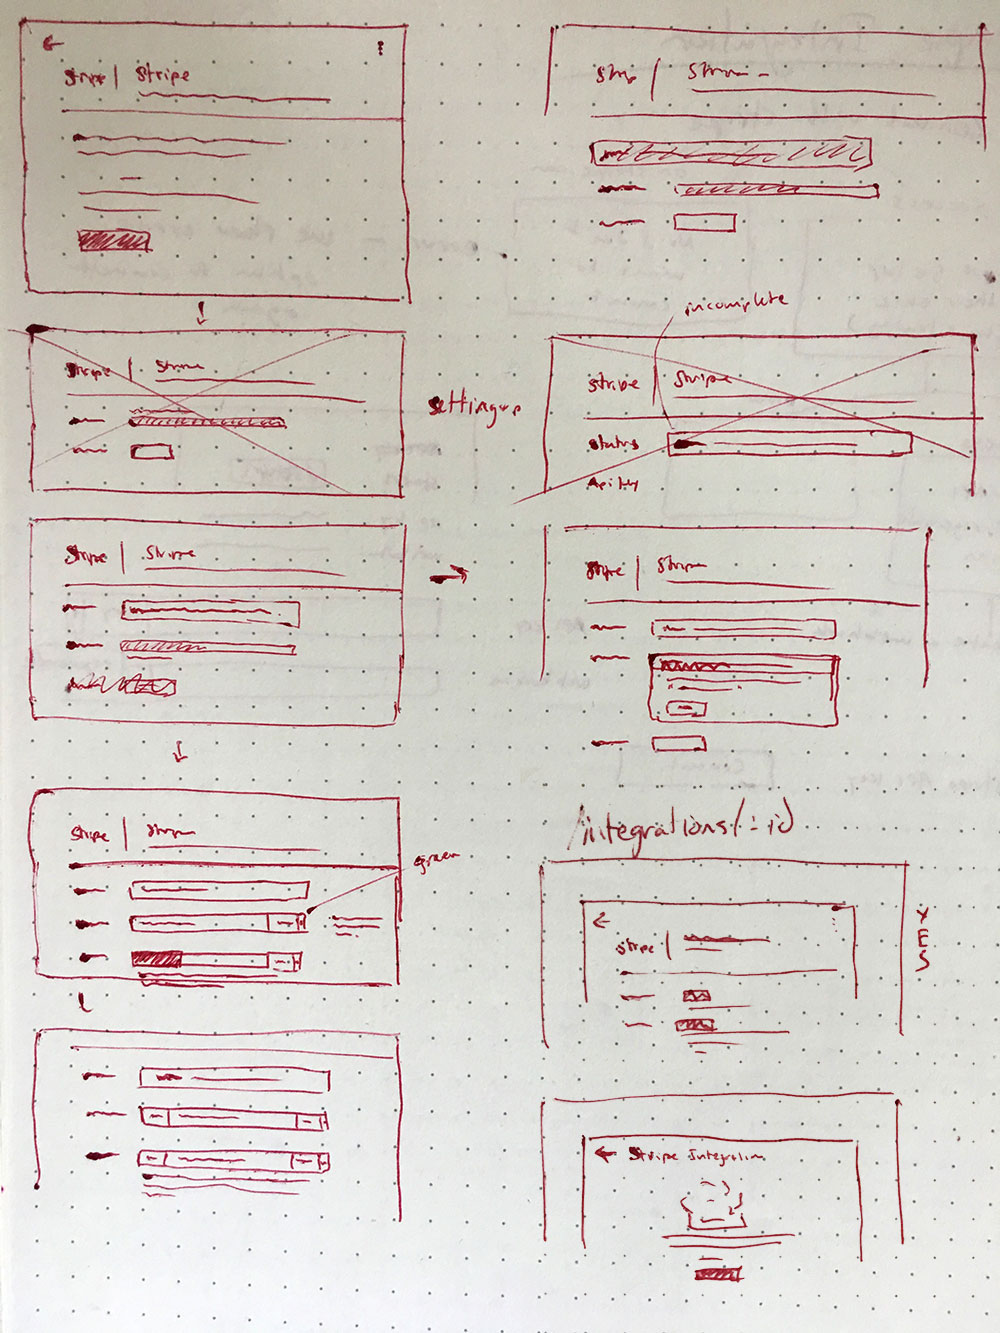 Photo of individual integration UI sketch